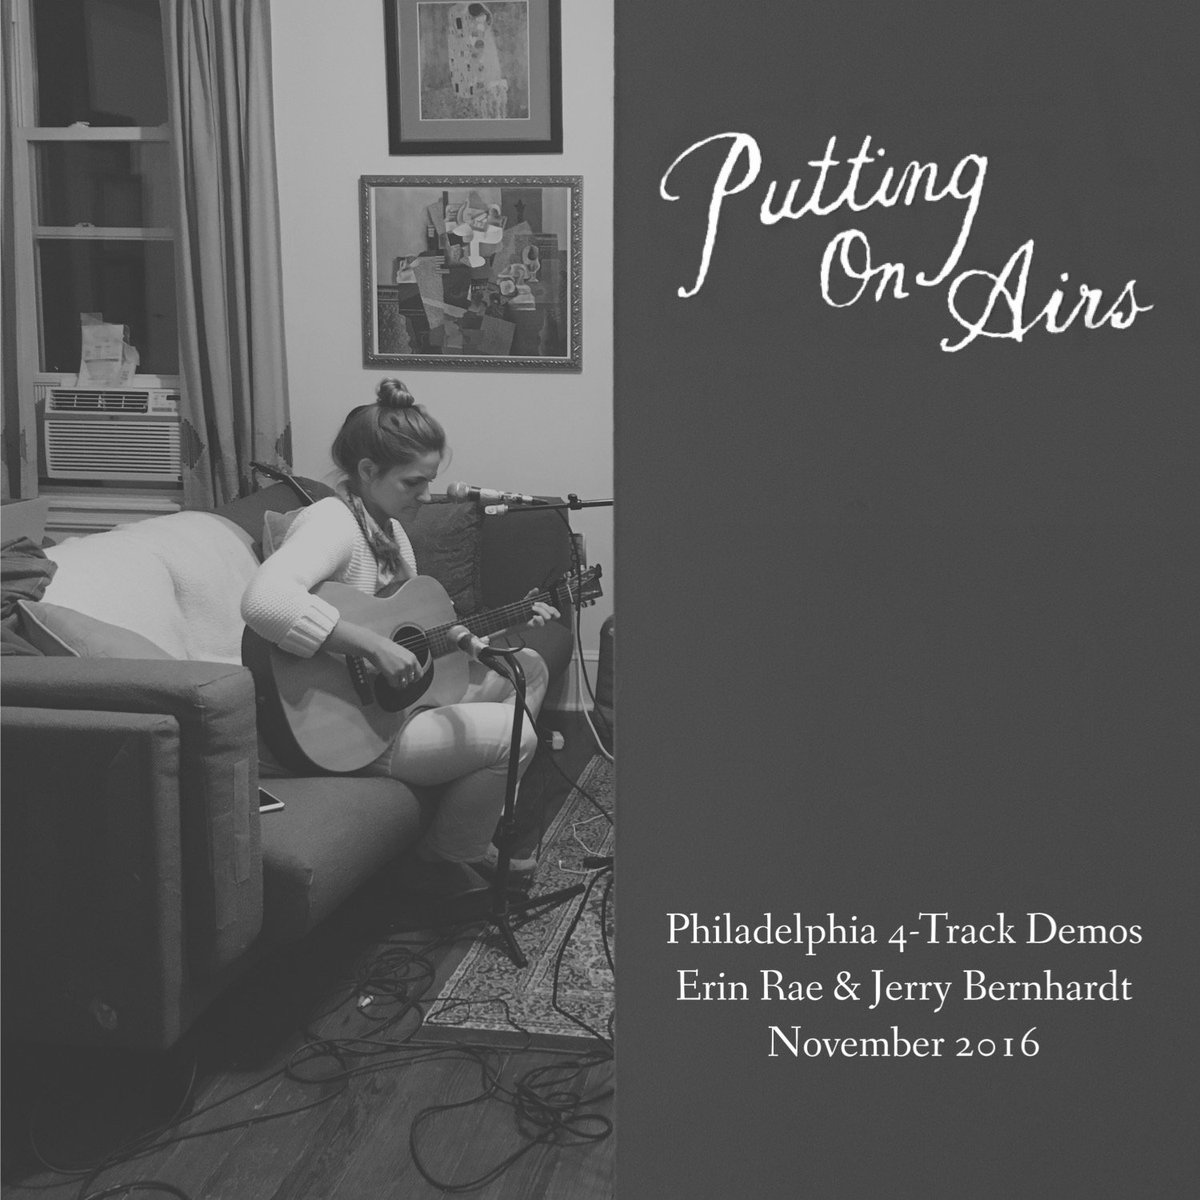 Out everywhere today: Putting On Airs (4-track Demos) ✨Track listing:1. Grand Scheme2. Can't Cut Loose3. The Real Thing4. Putting On AirsHope you enjoy listening these as much as I do. Listen here: https://orcd.co/erinraedemos✨